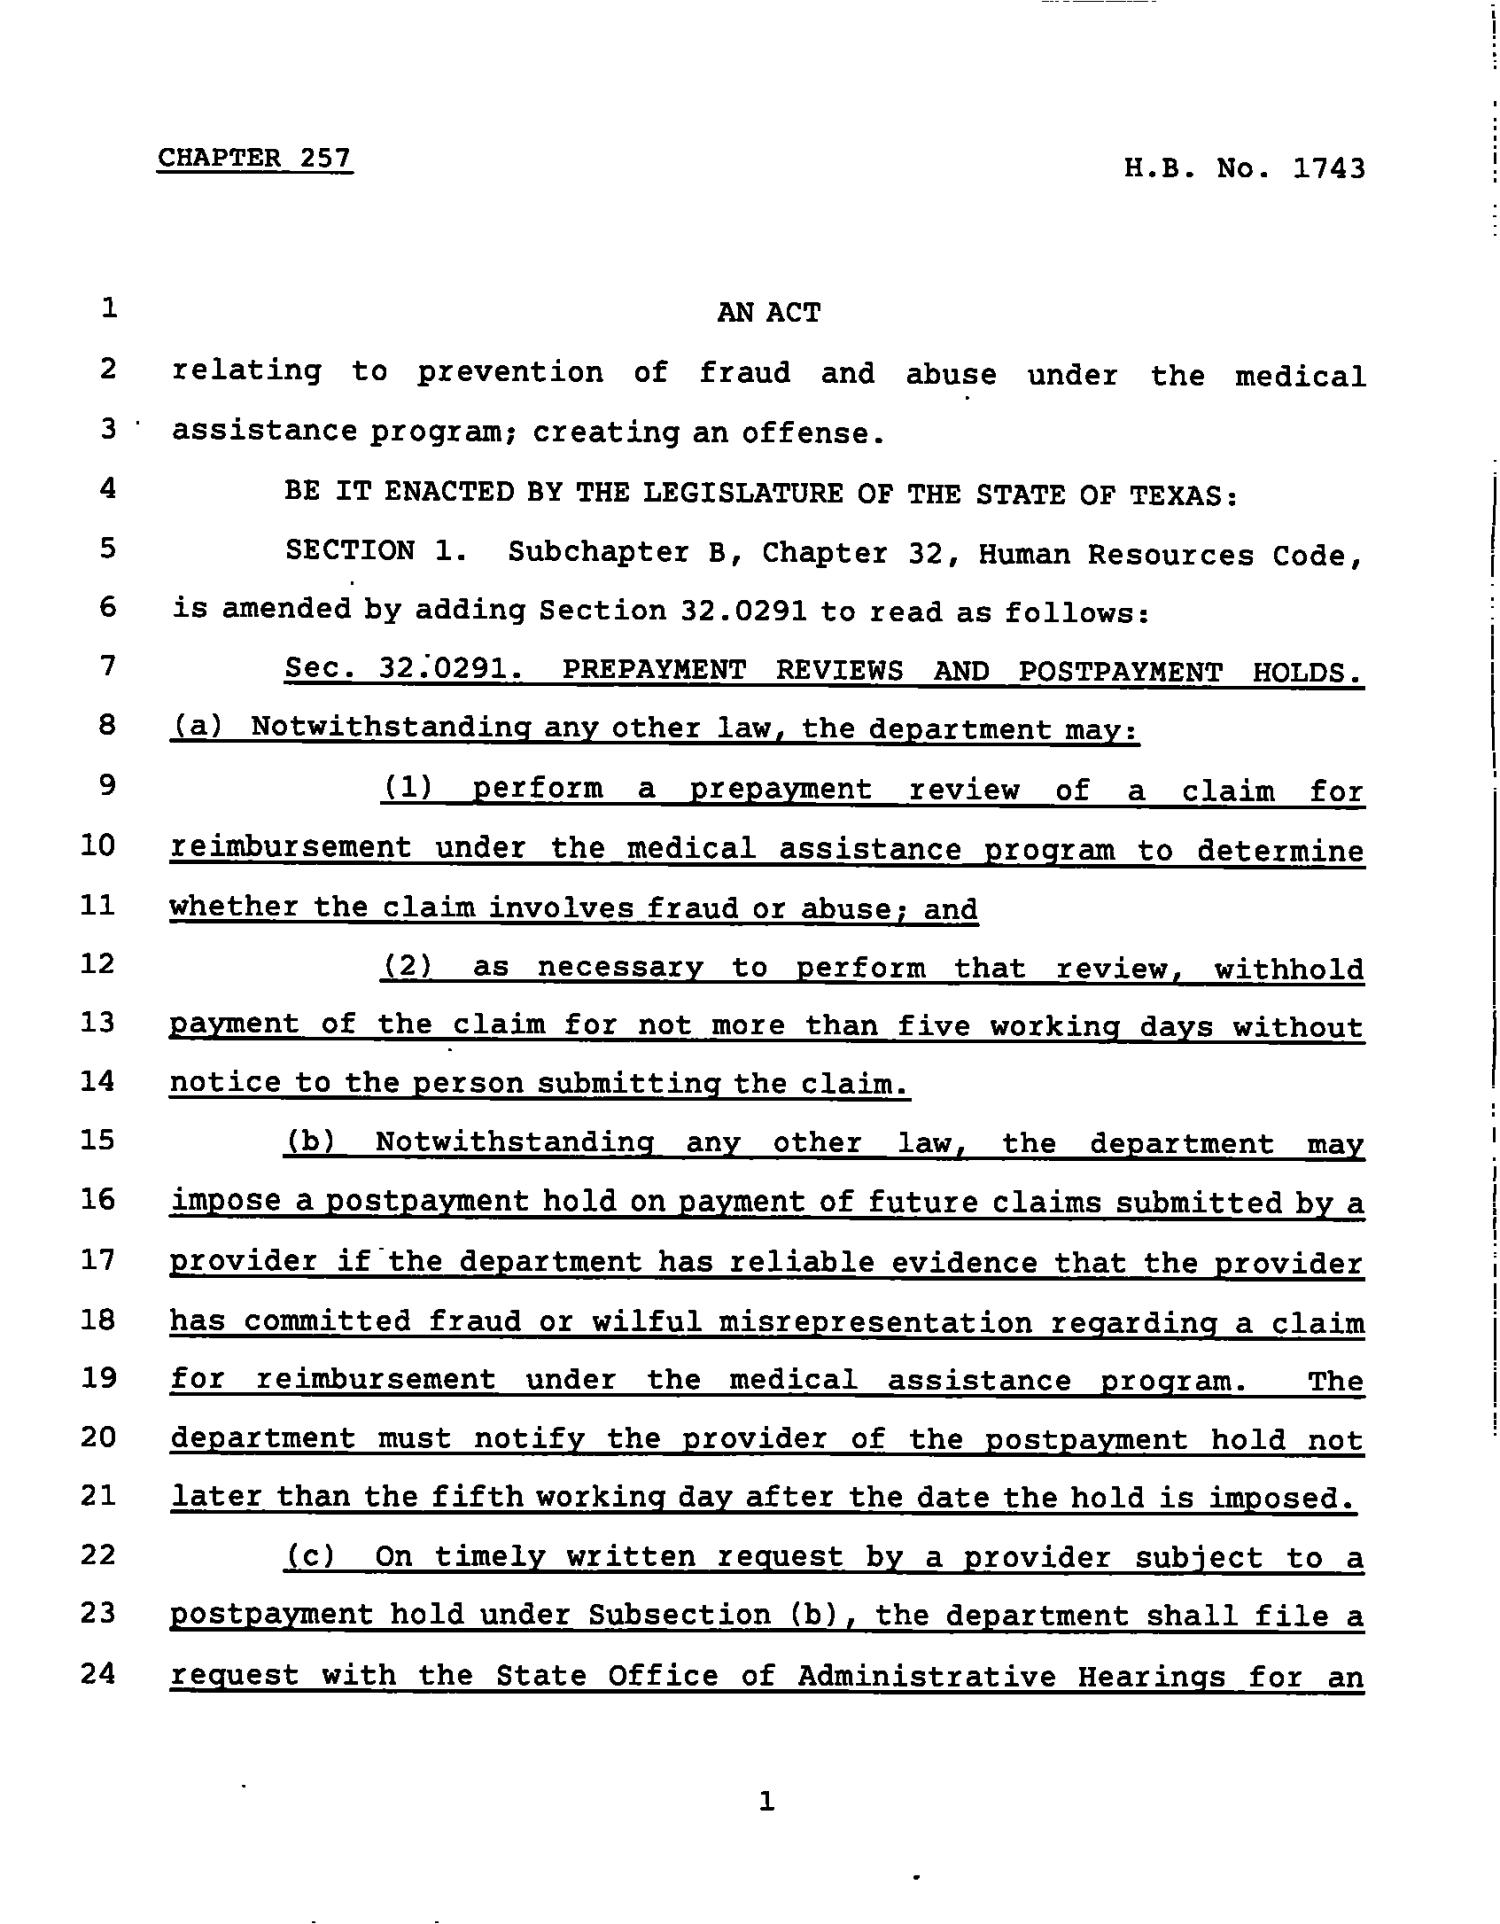 78th Texas Legislature, Regular Session, House Bill 1743, Chapter 257                                                                                                      [Sequence #]: 1 of 21